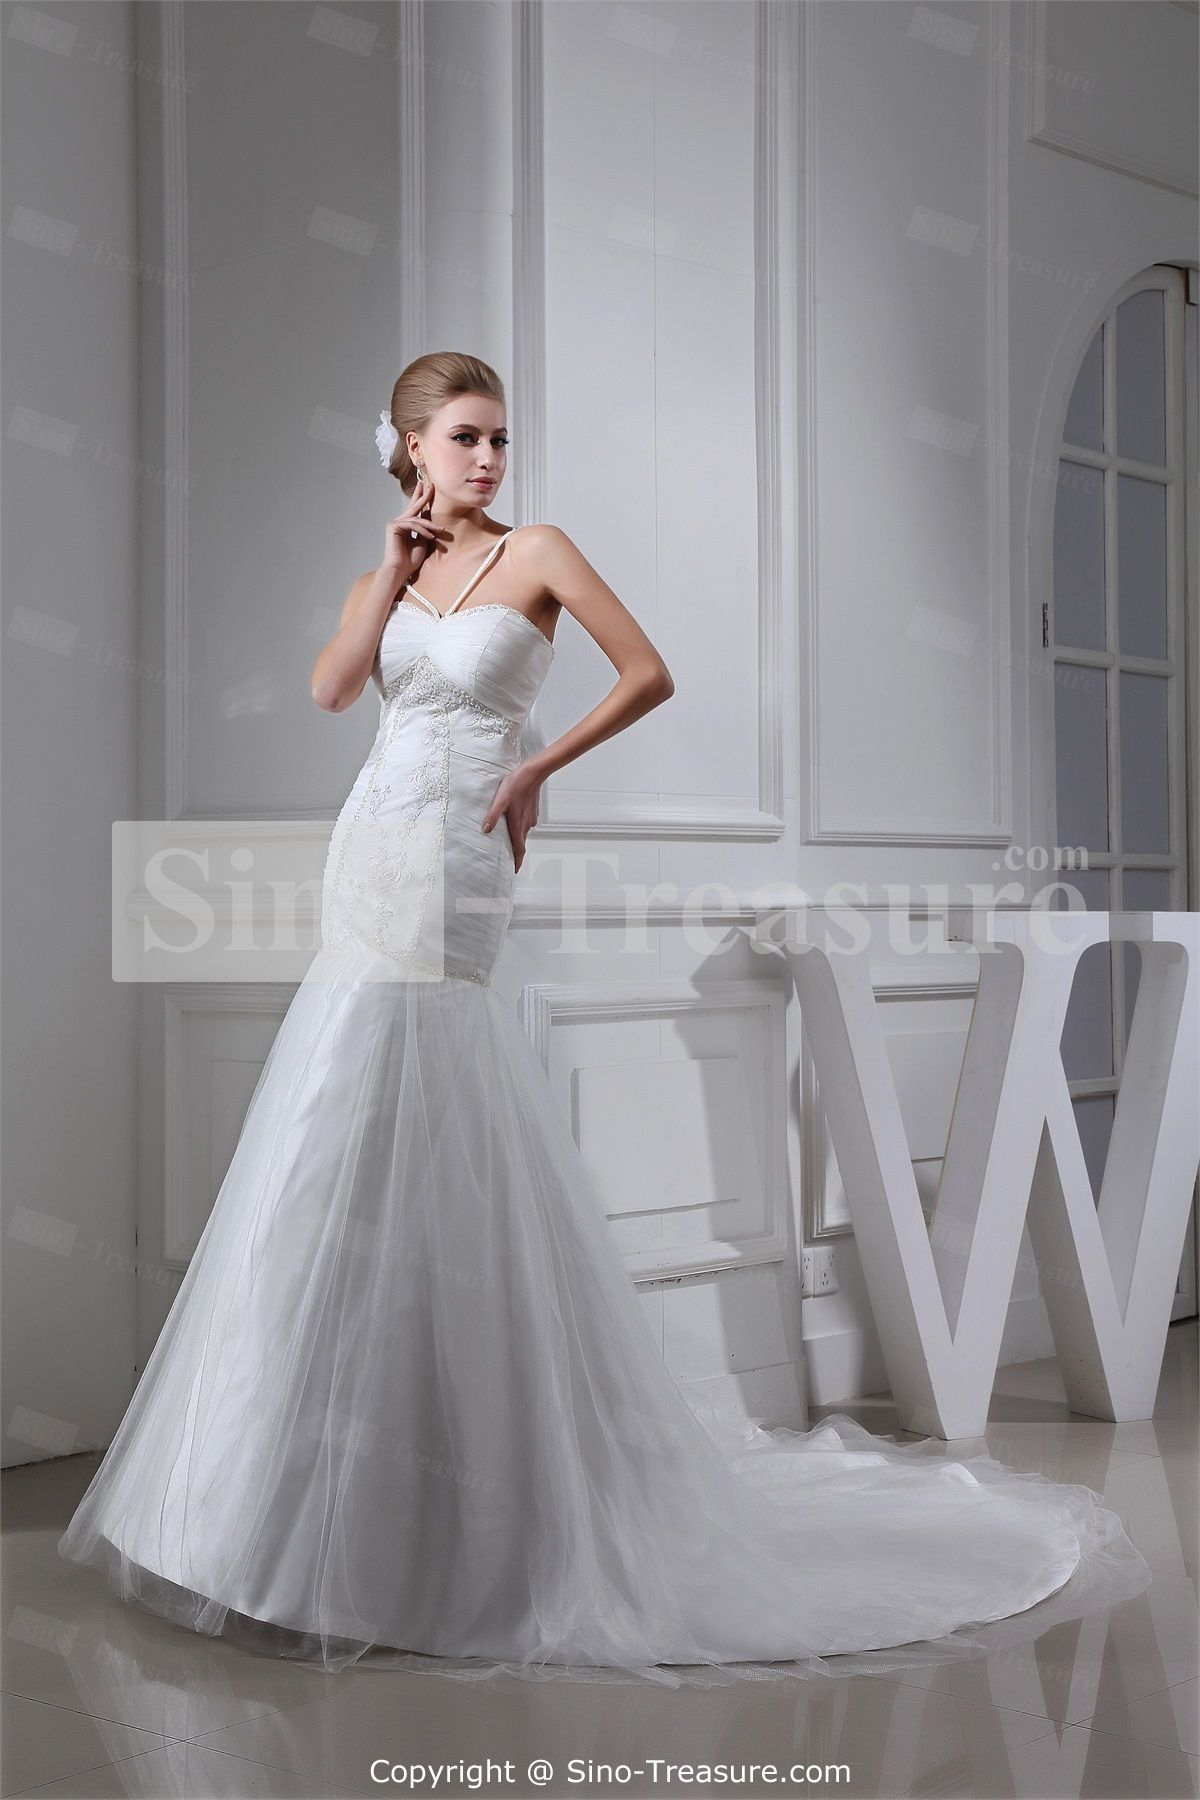 White Beading Sleeveless A-Line Hater Sweetheart Princess Wedding Dress Wholesale Price: US$267.99